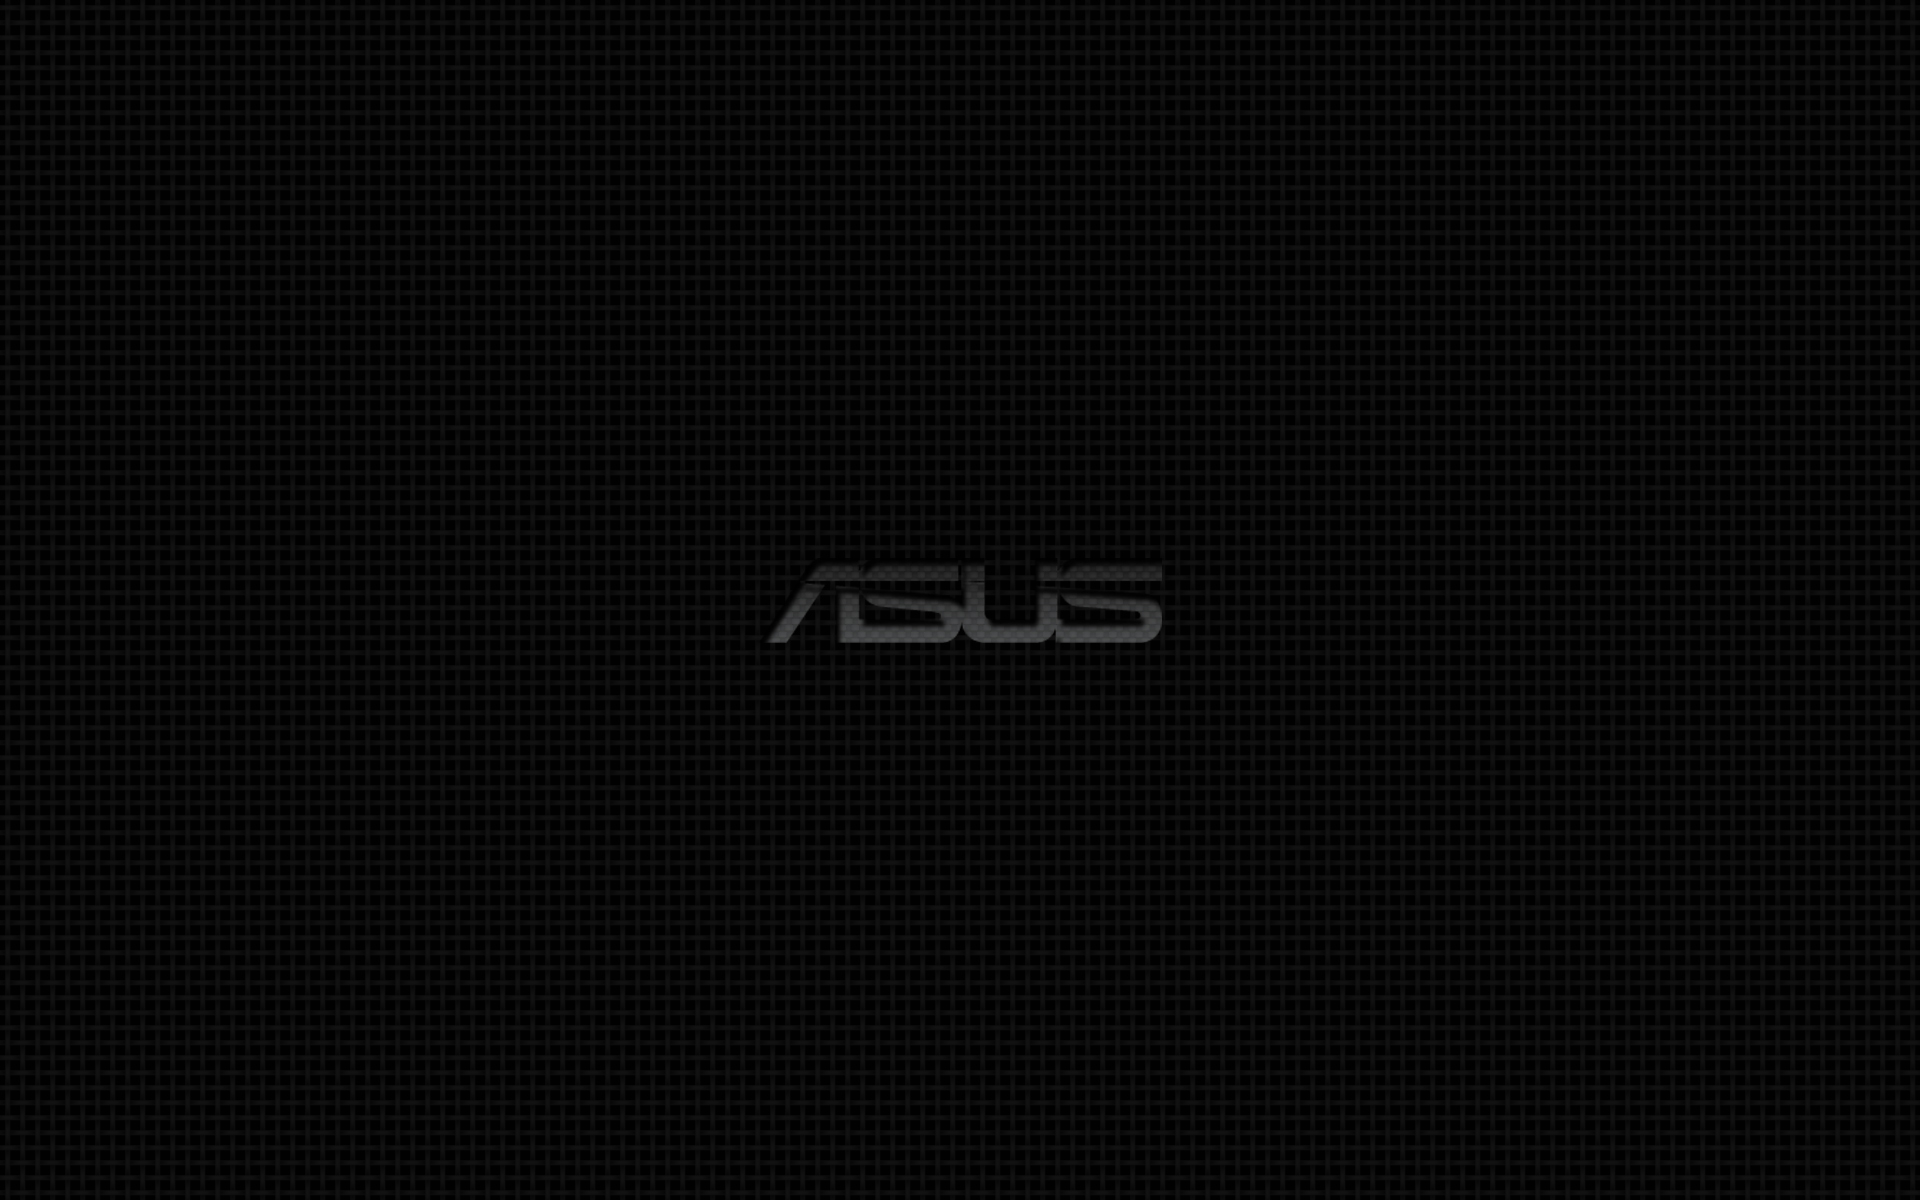 163 asus hd wallpapers | background images - wallpaper abyss - page 2